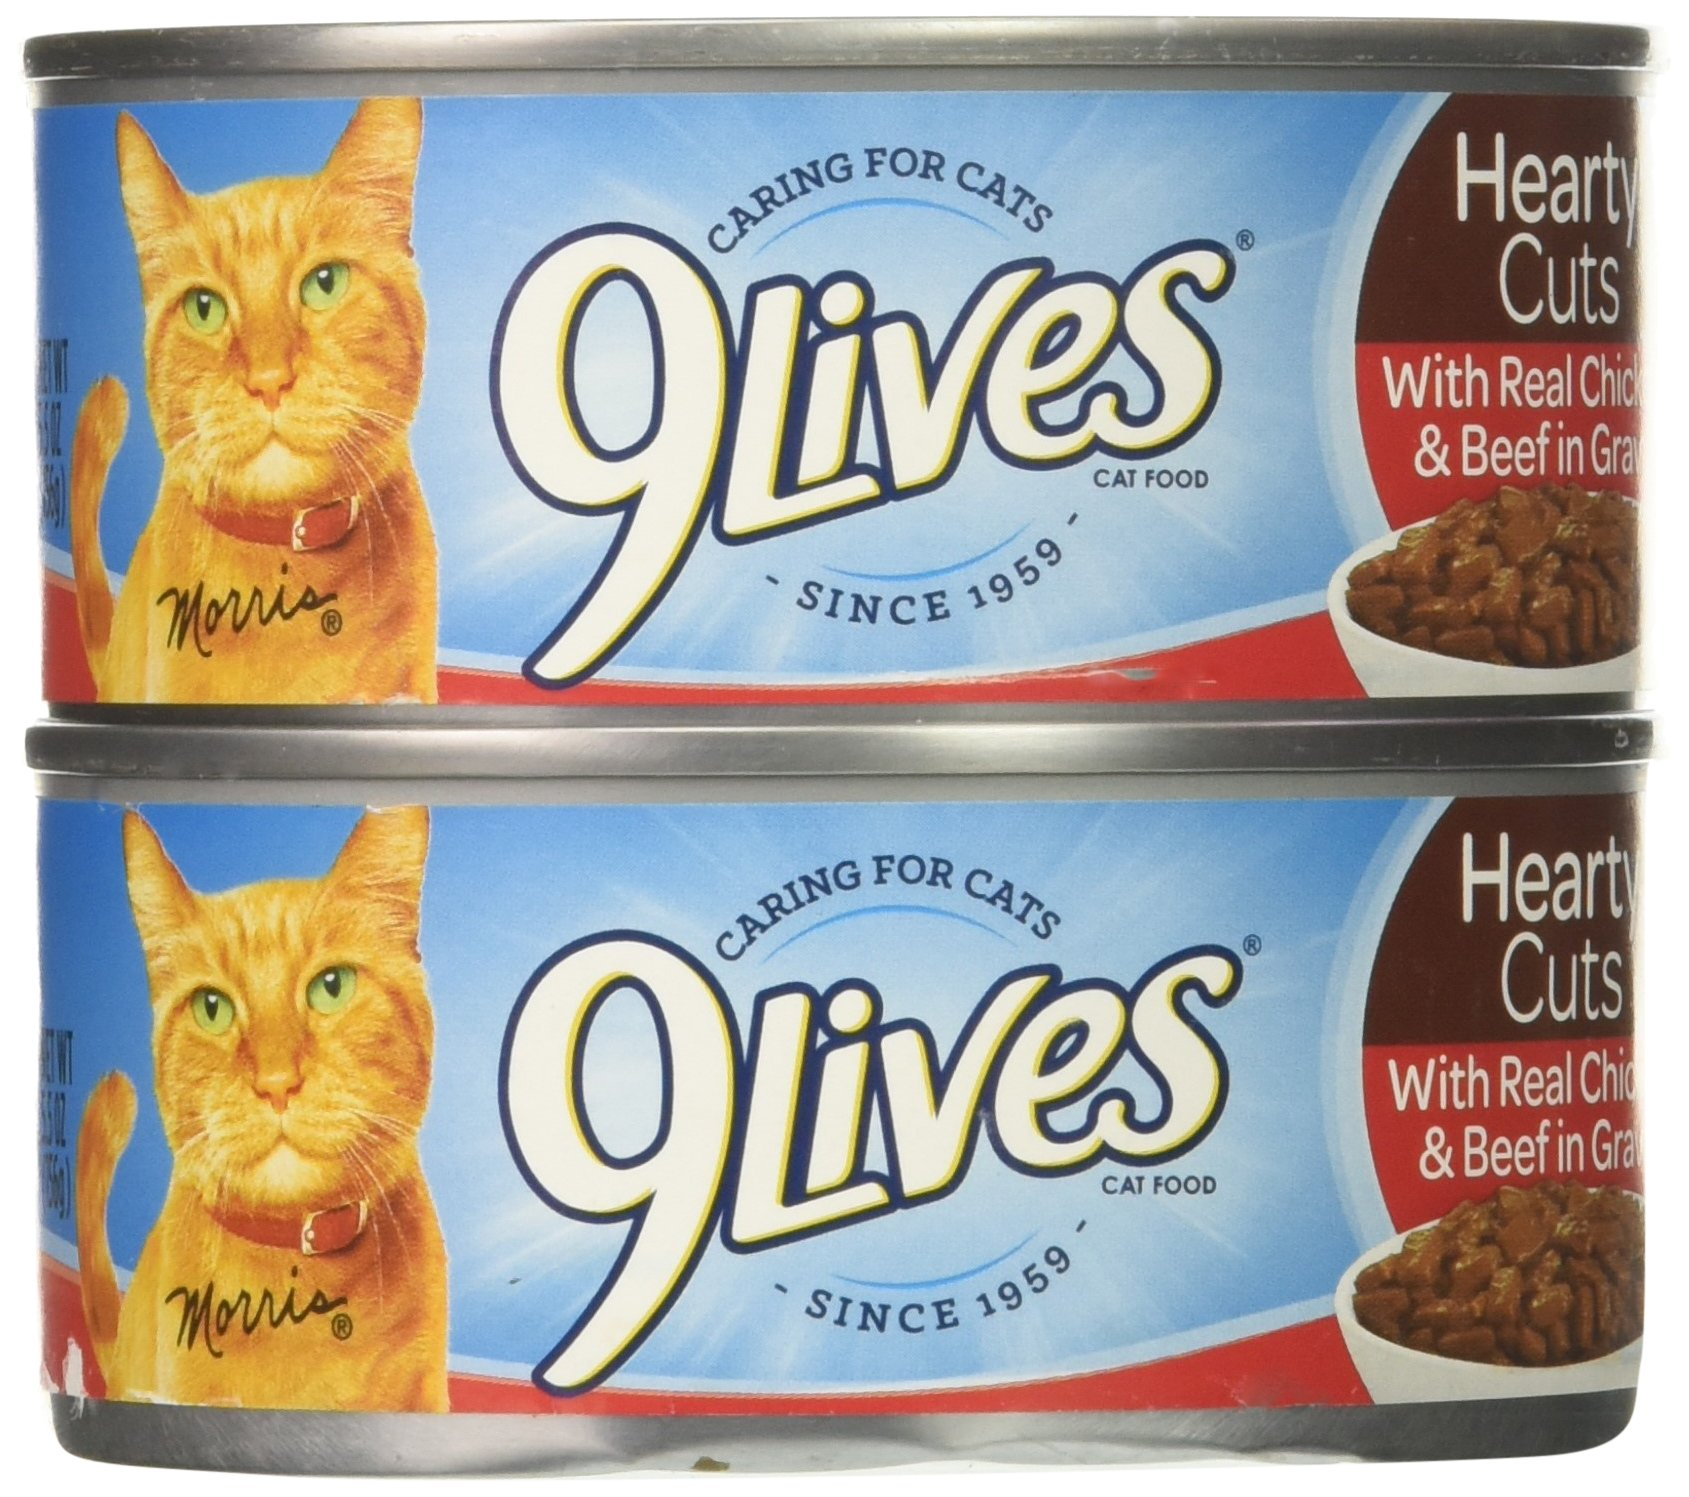 9 Lives Sliced Beef Gravy, 4.0 Count (Pack of 6) by 9Lives